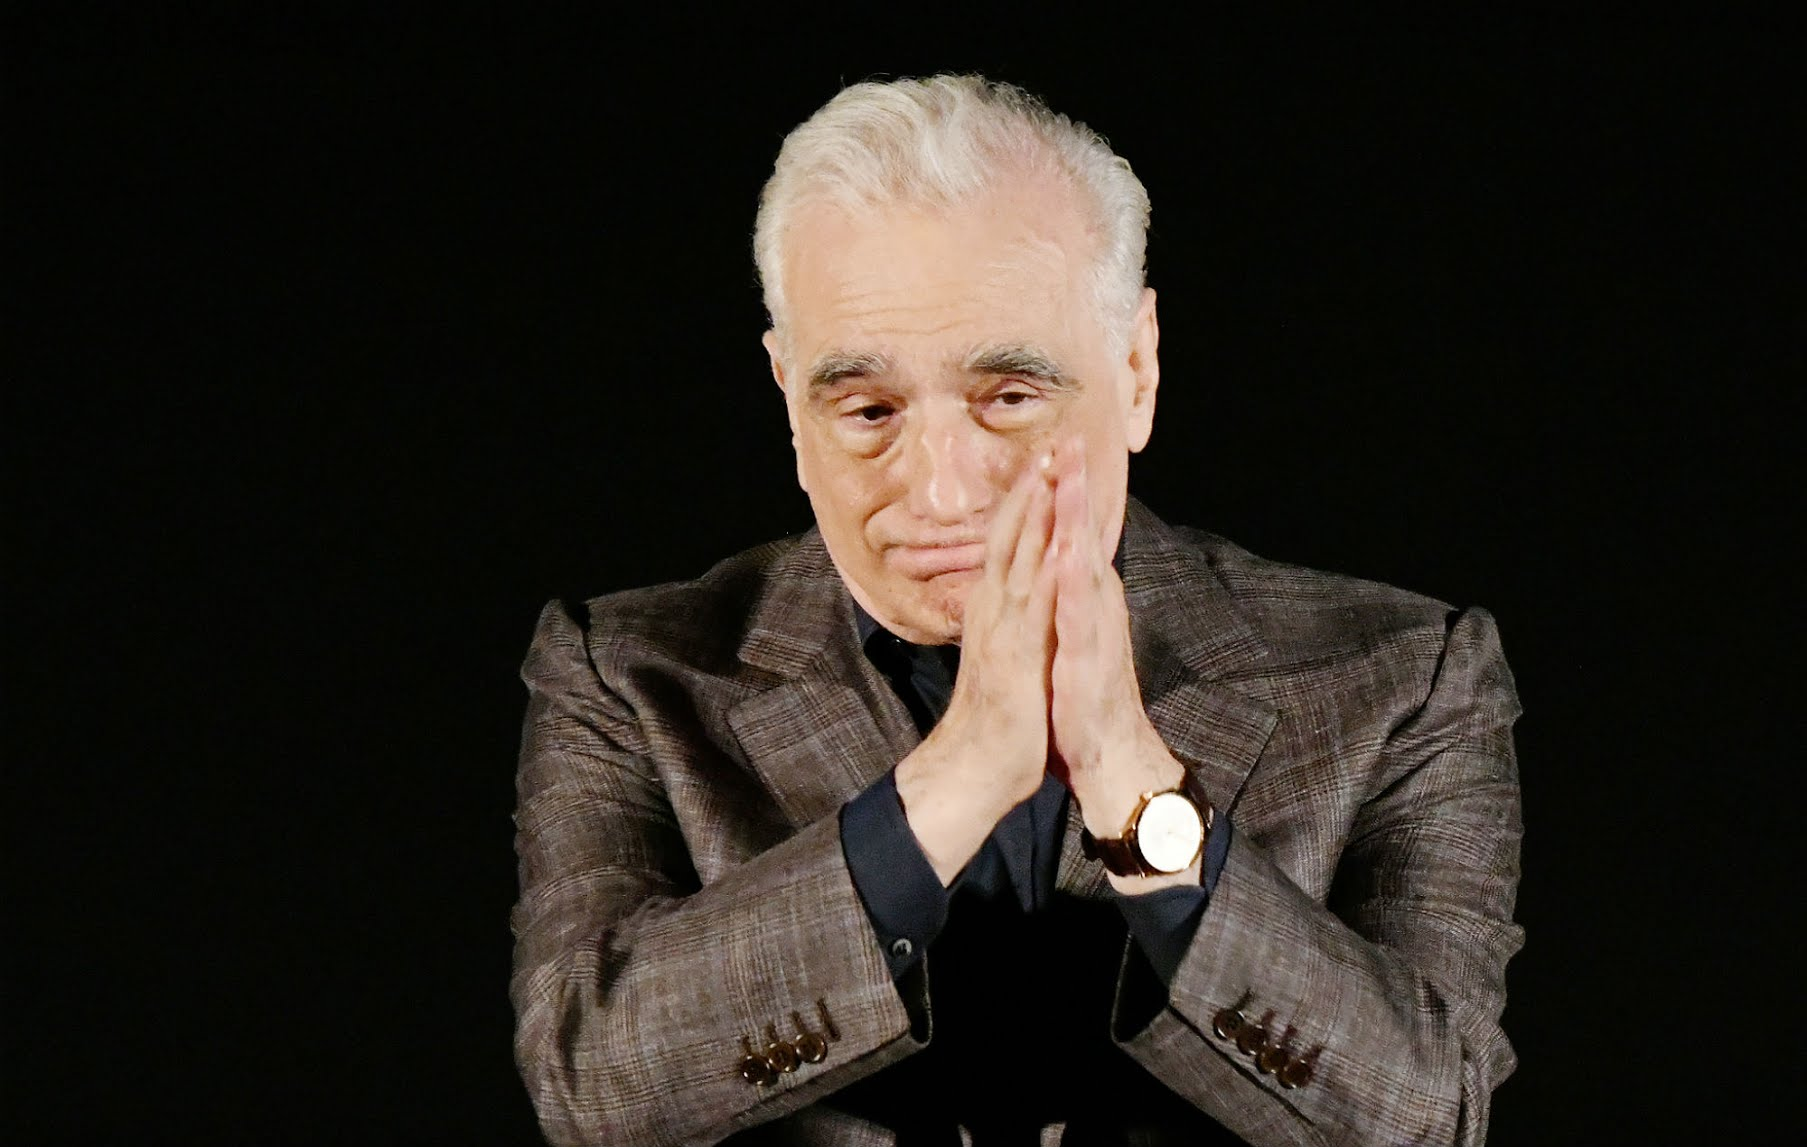 Martin Scorsese invited more controversy by telling people to not watch the movie on their phones. Pic courtesy: nme.com